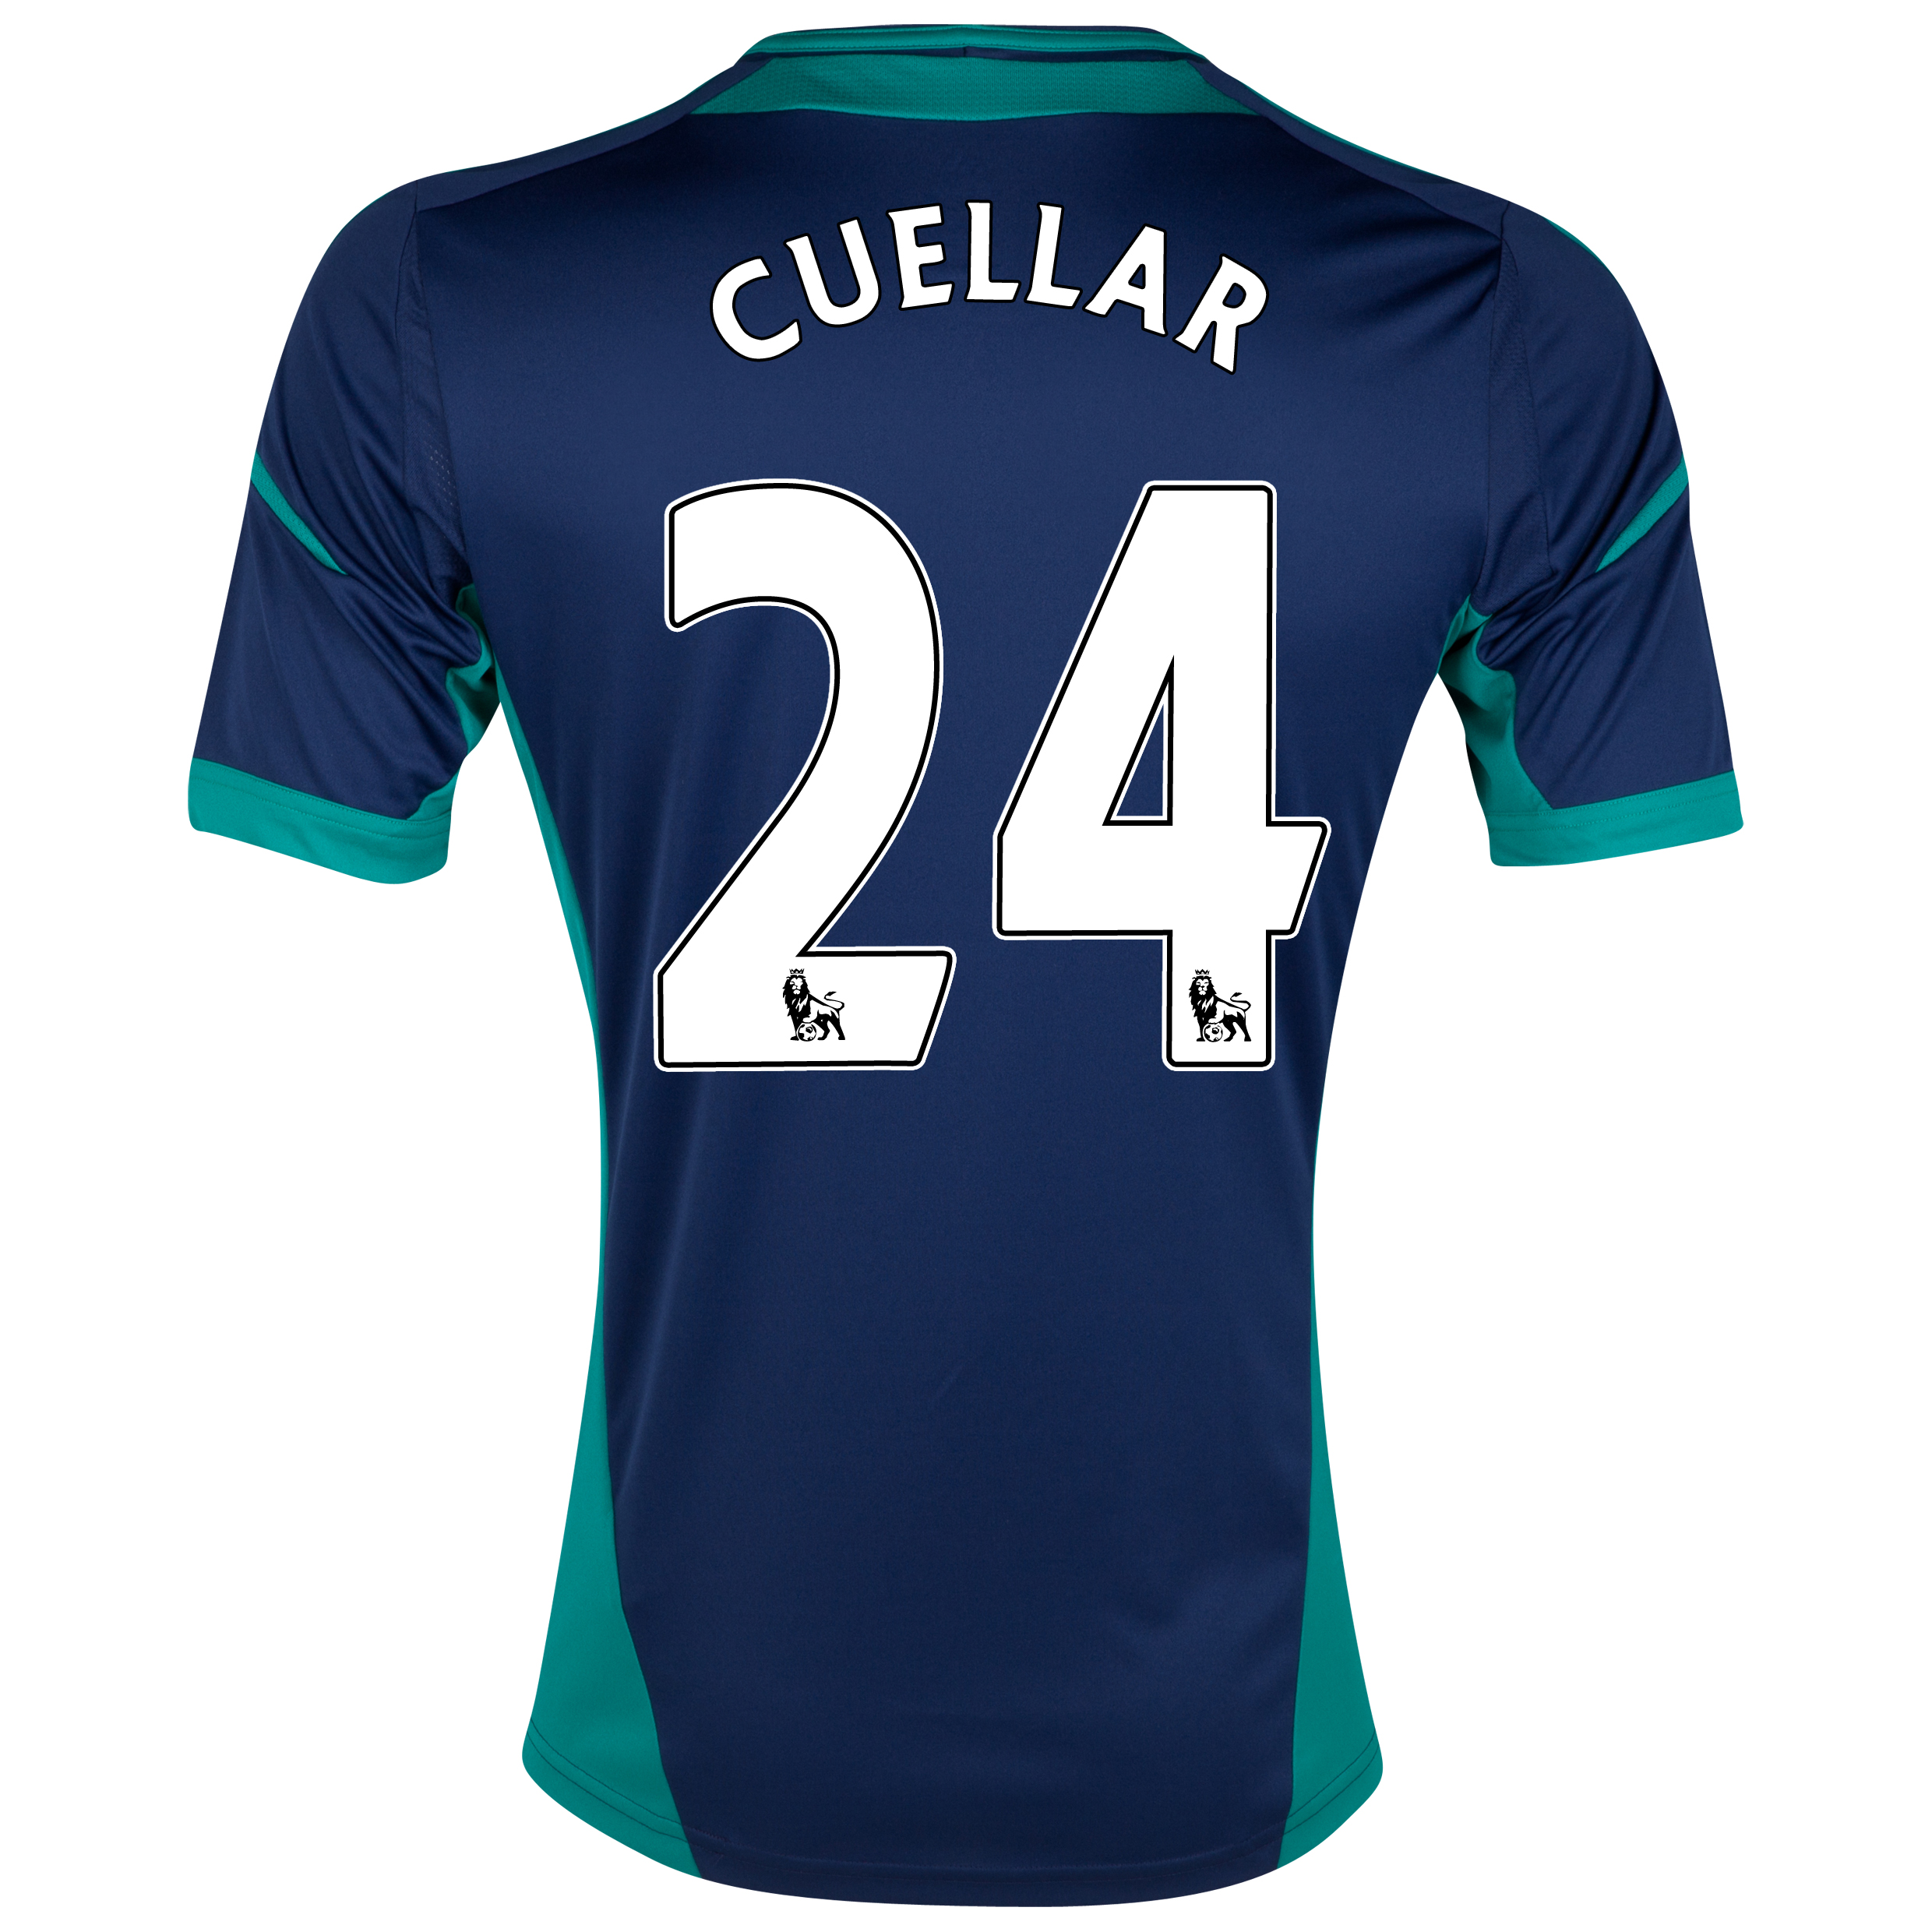 Sunderland Away Shirt 2012/13 - Junior with Cuellar 24 printing